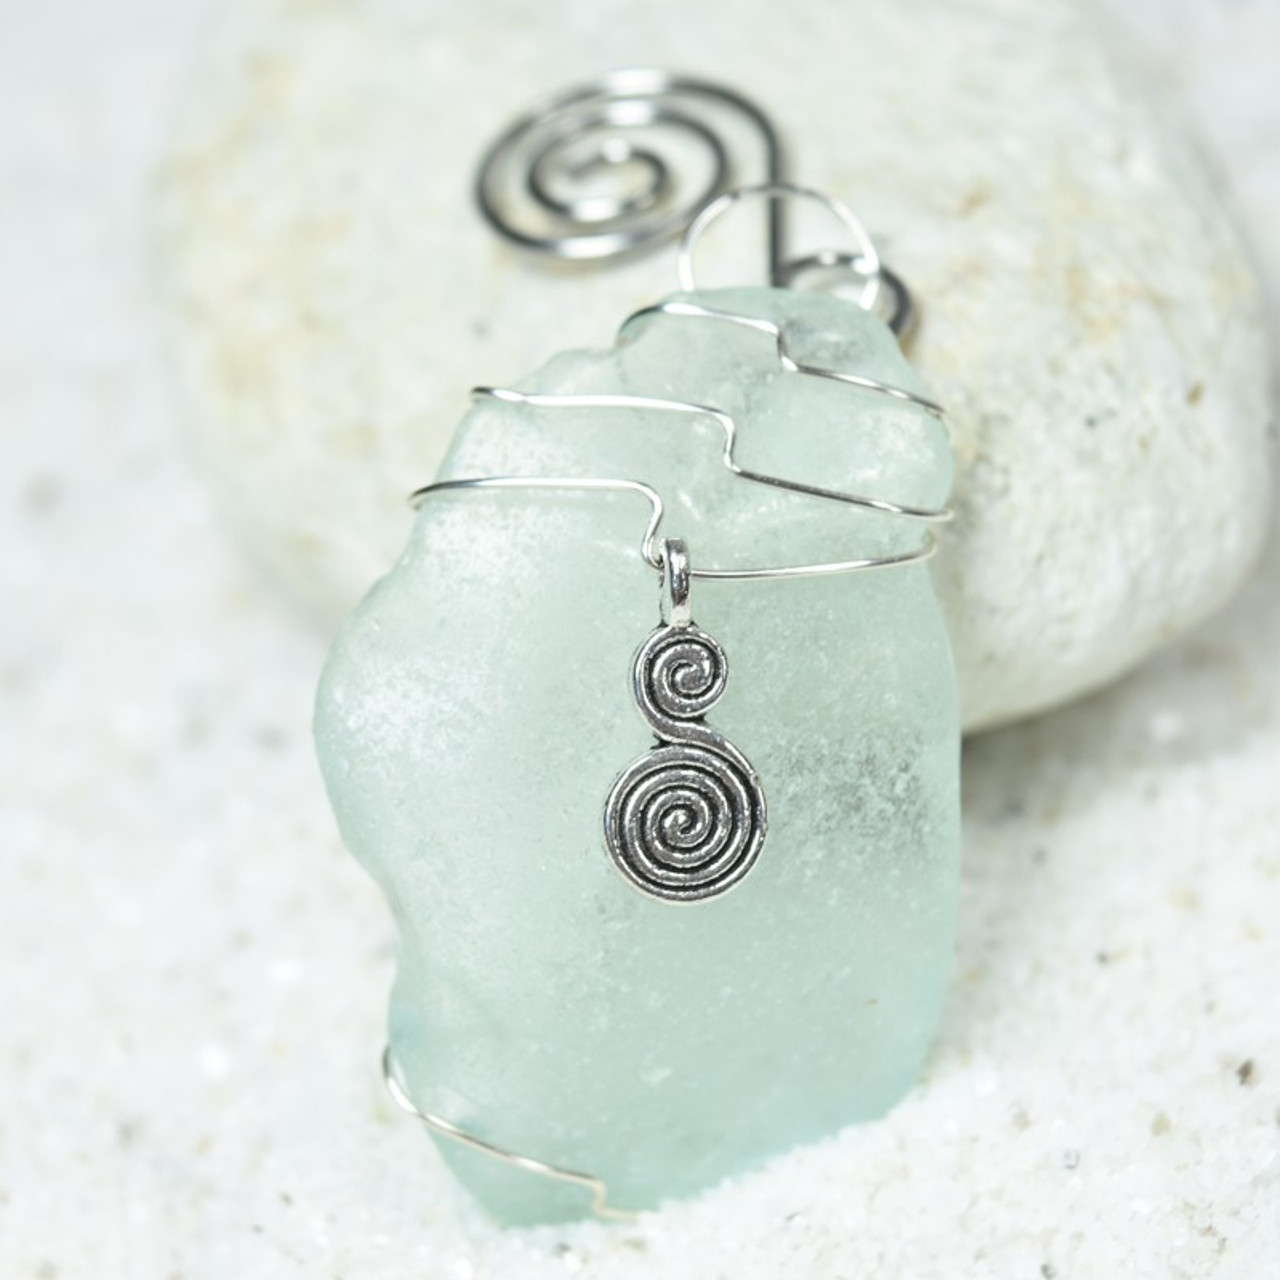 Spiral Charm on a Surf Tumbled Sea Glass Ornament - Choose Your Color Sea Glass Frosted, Green, and Brown - Made to Order